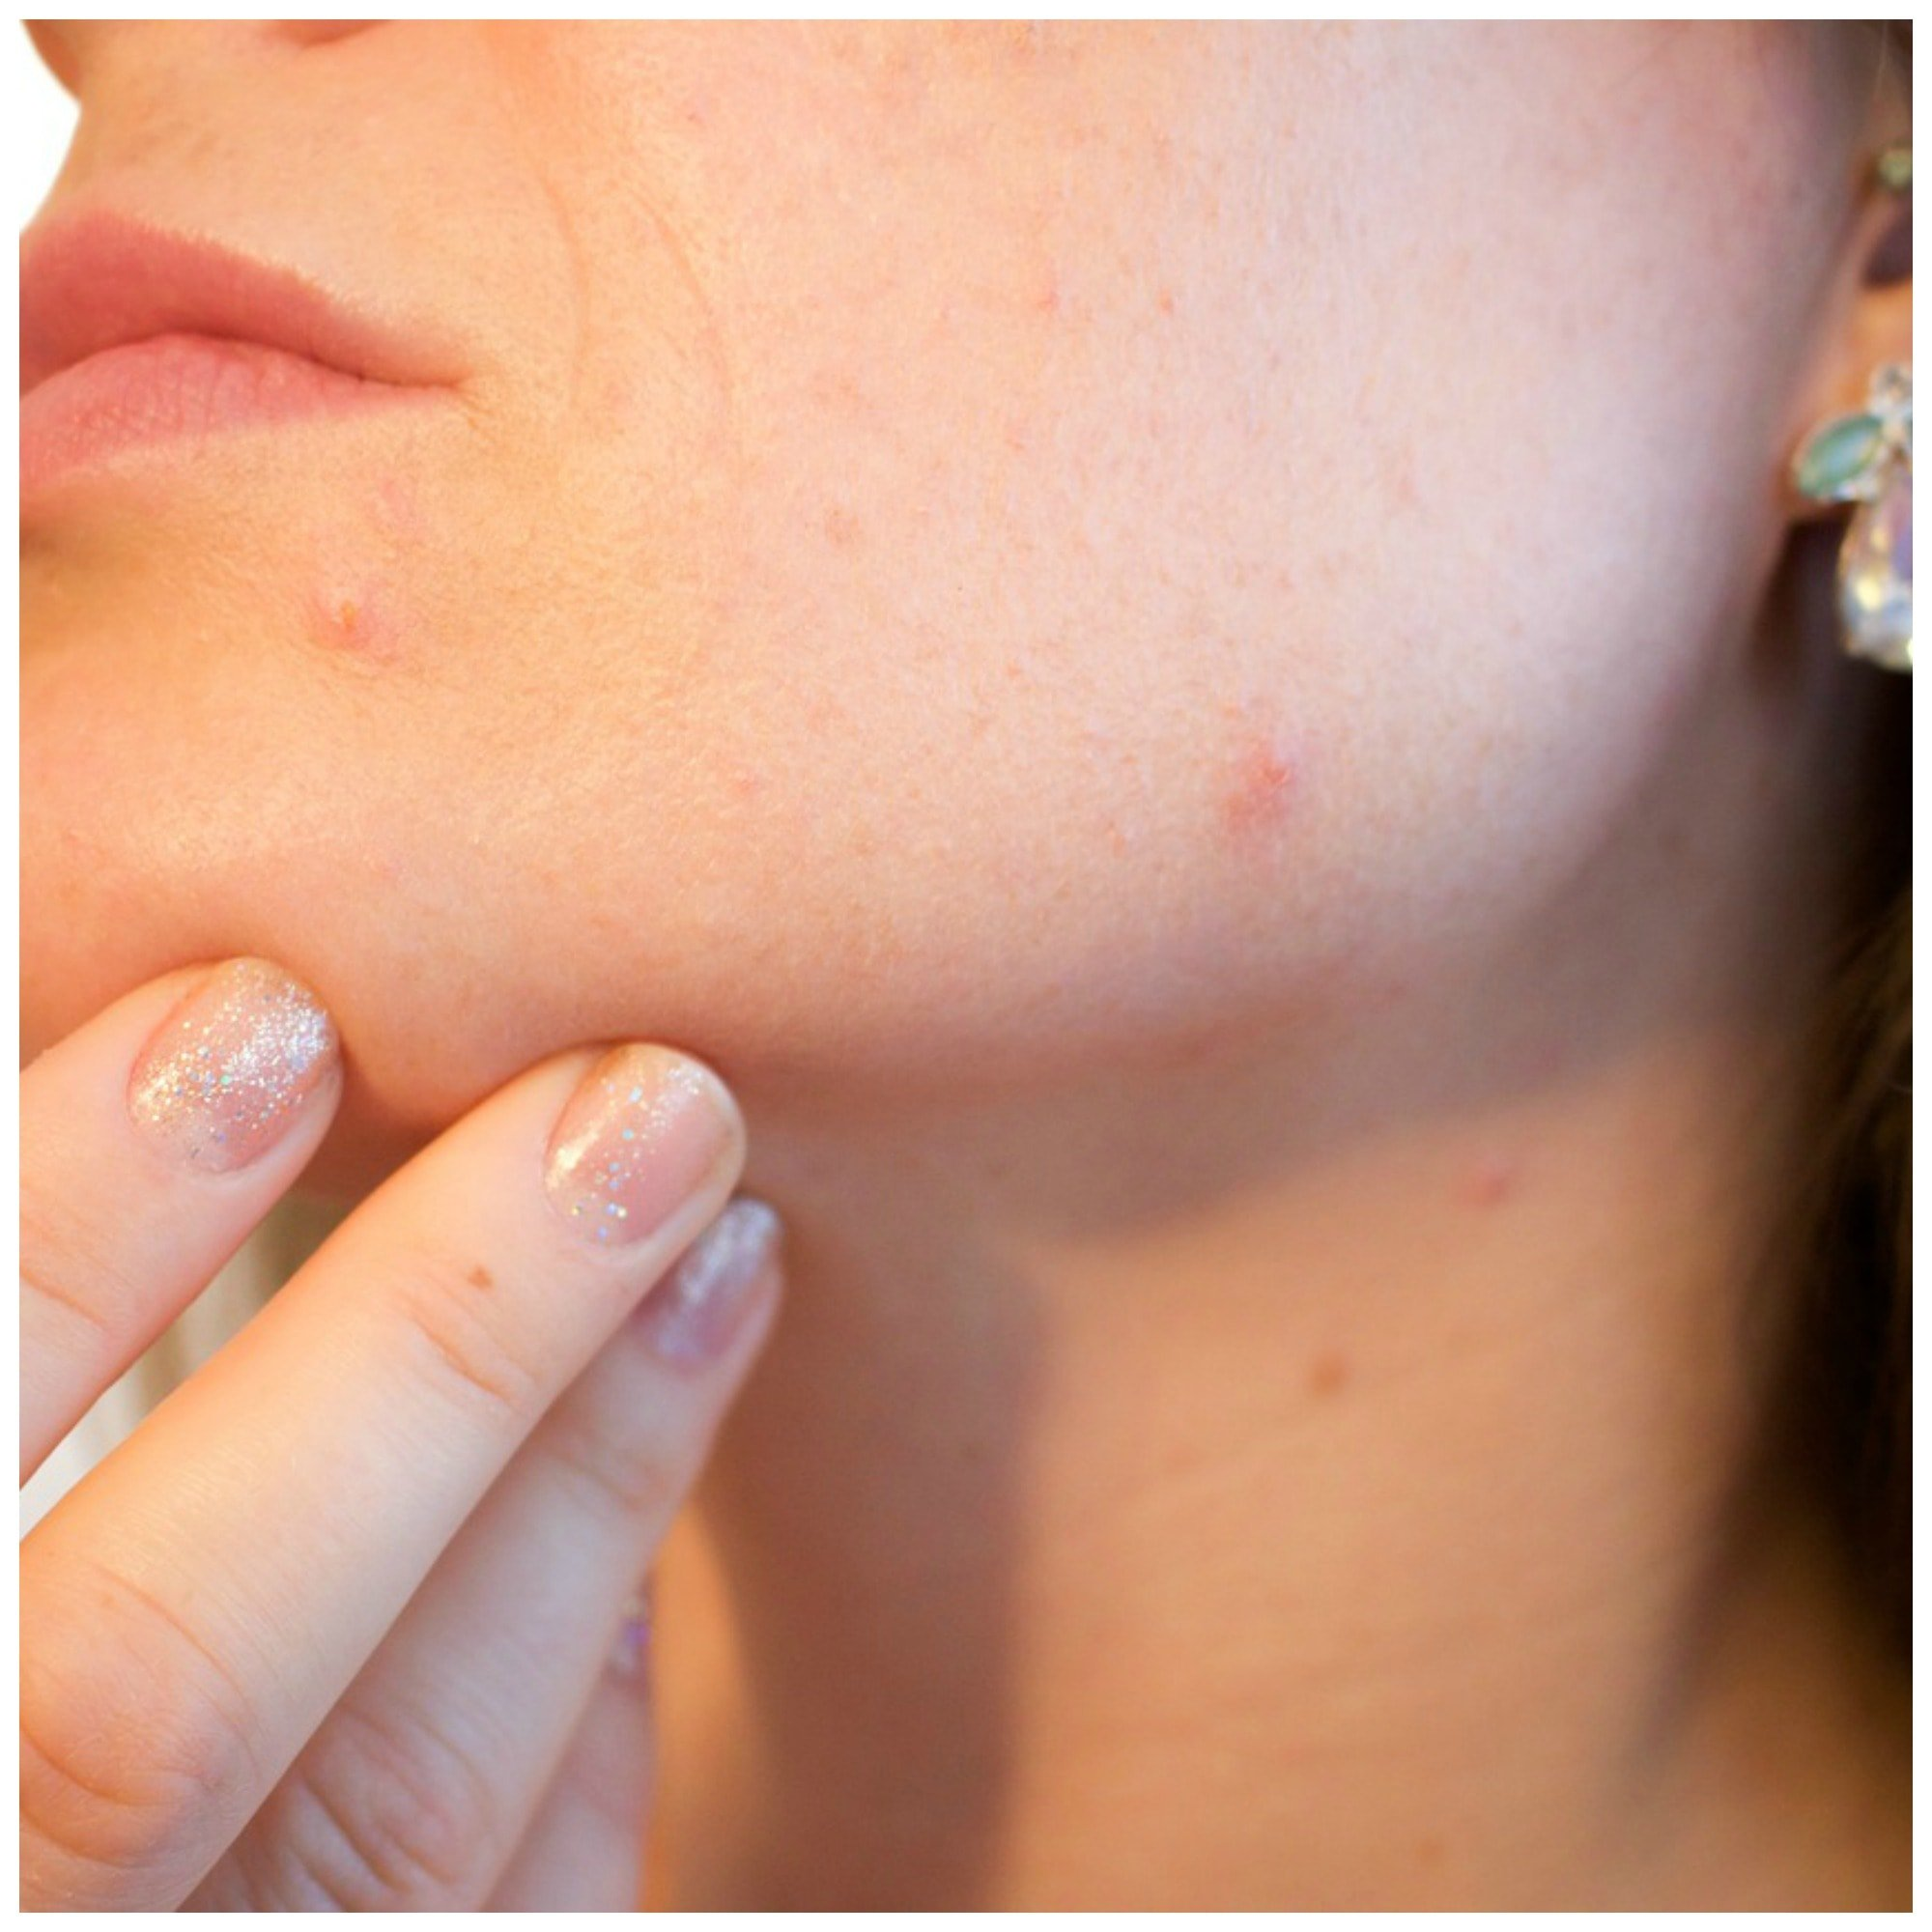 Can Essential Oils Help With Acne?